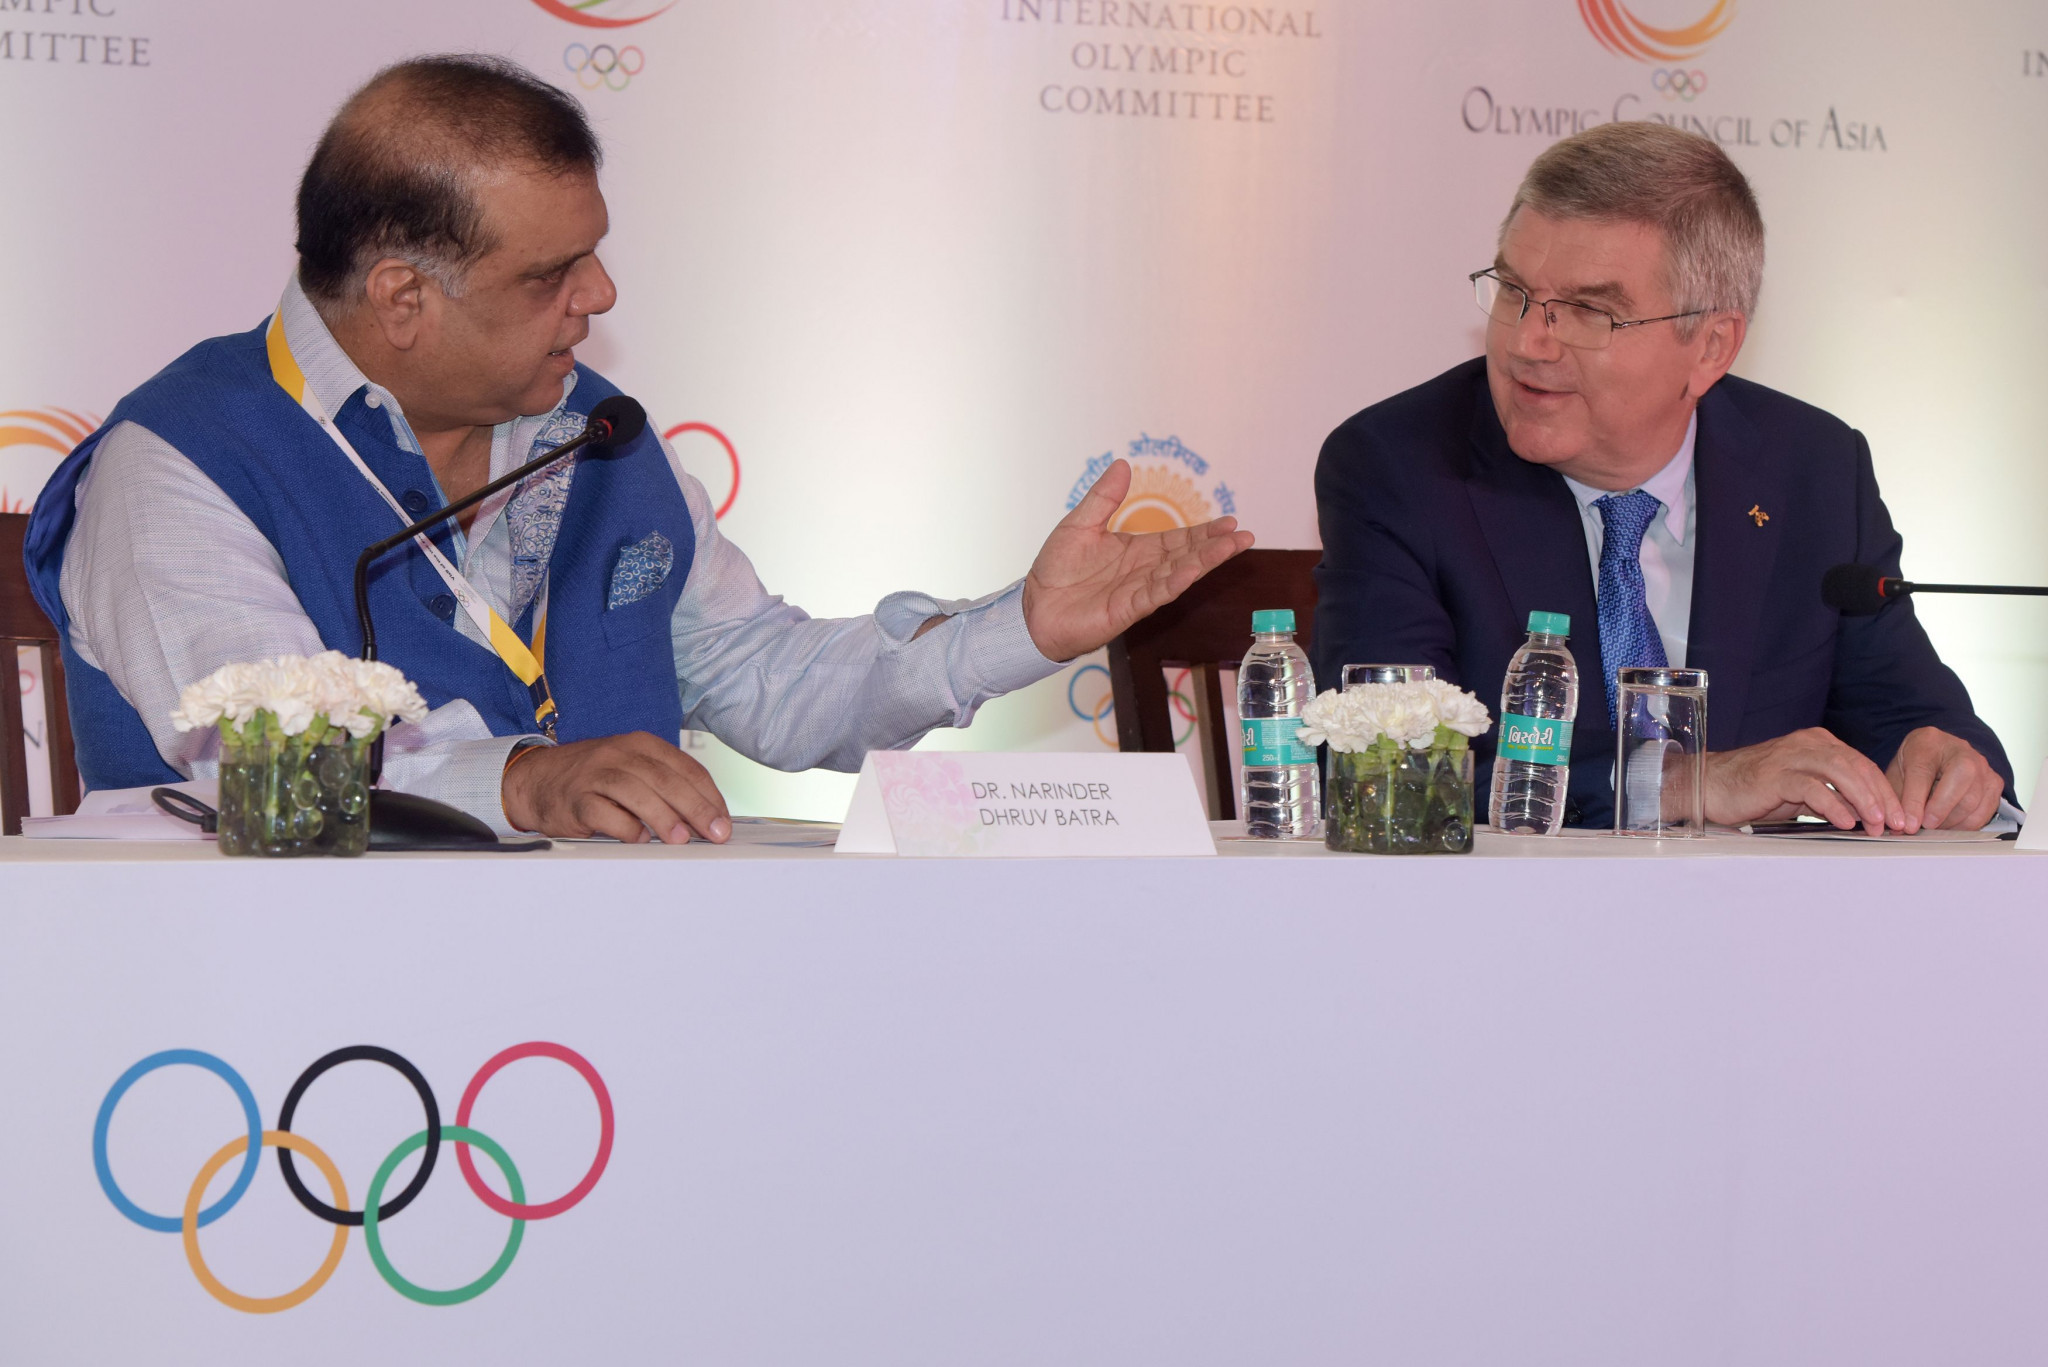 IOA President Narinder Batra became an IOC member earlier this year ©Getty Images